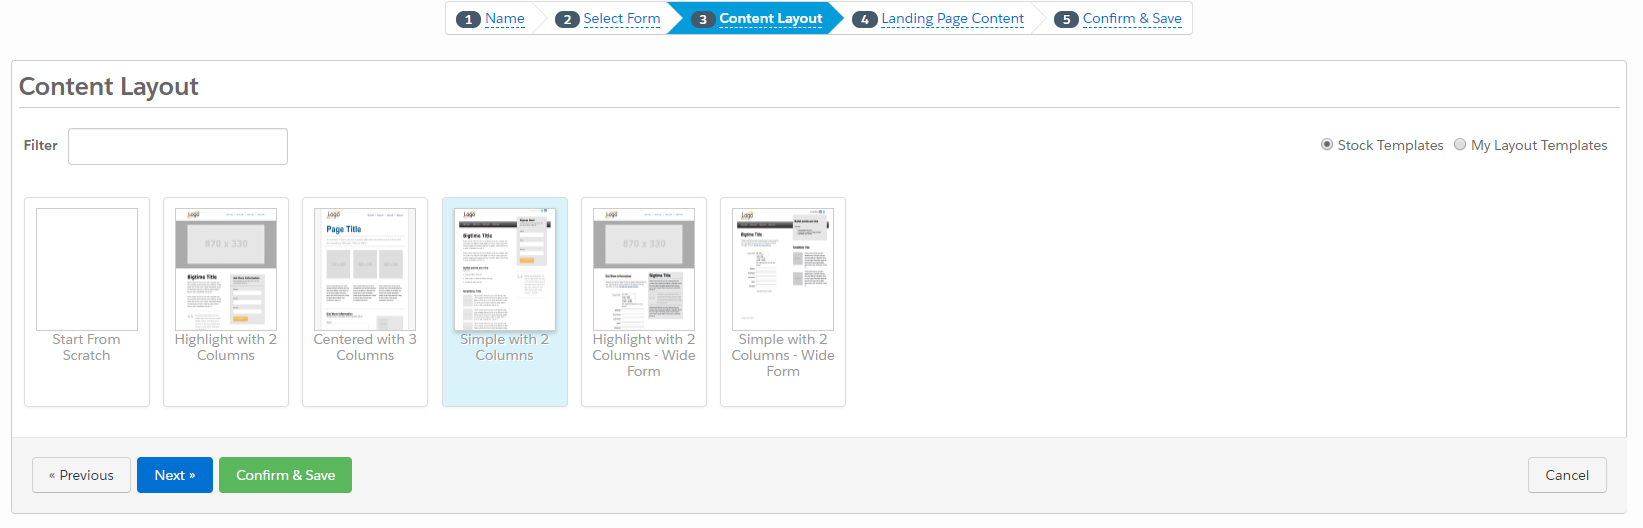 Creating a New Landing Page in Pardot